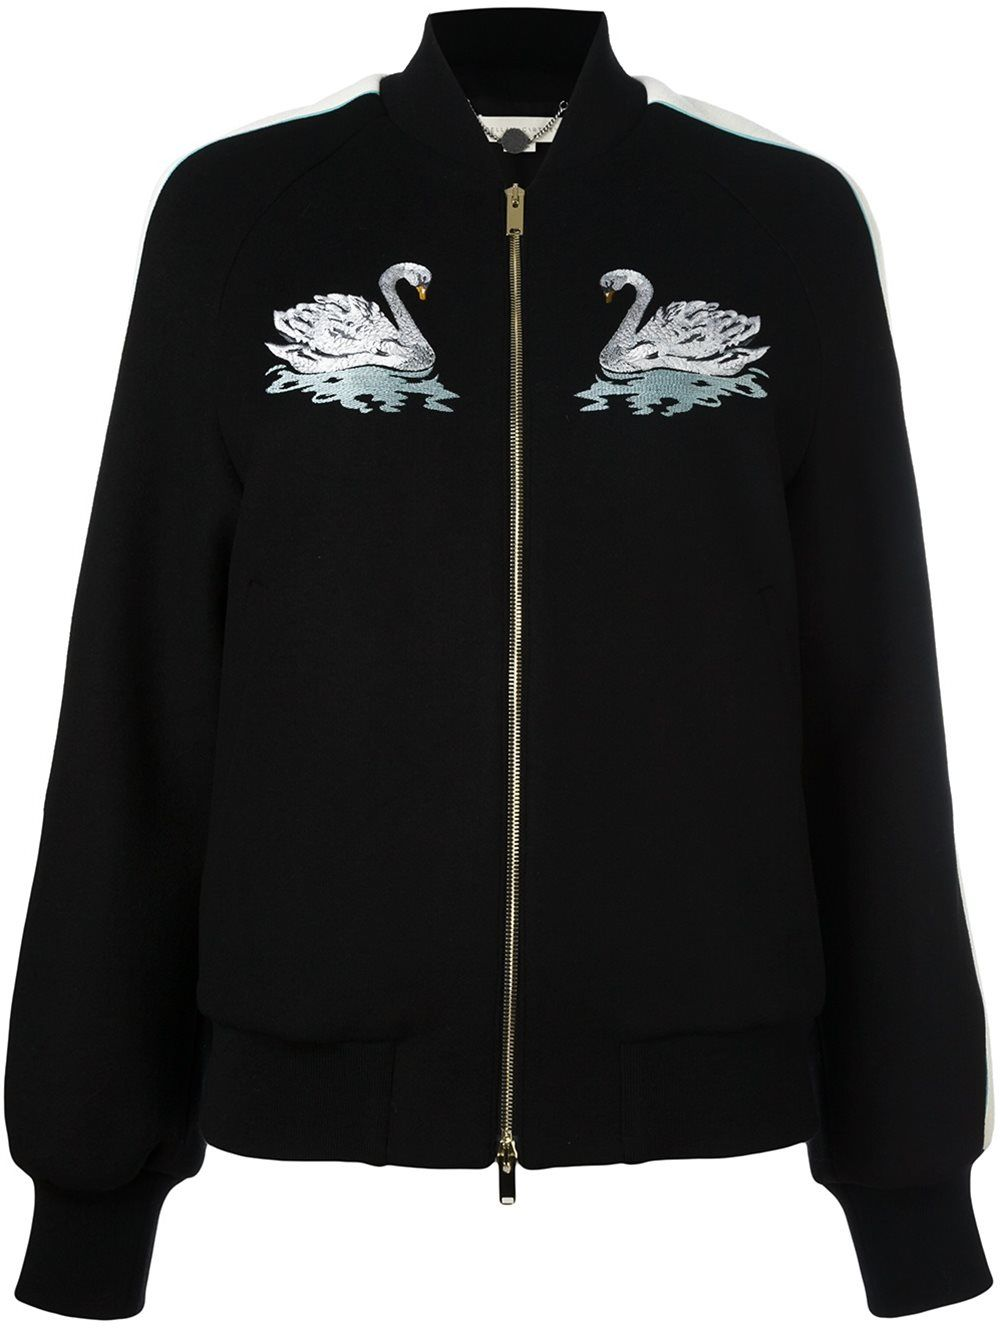 Stella mccartney veste bomber